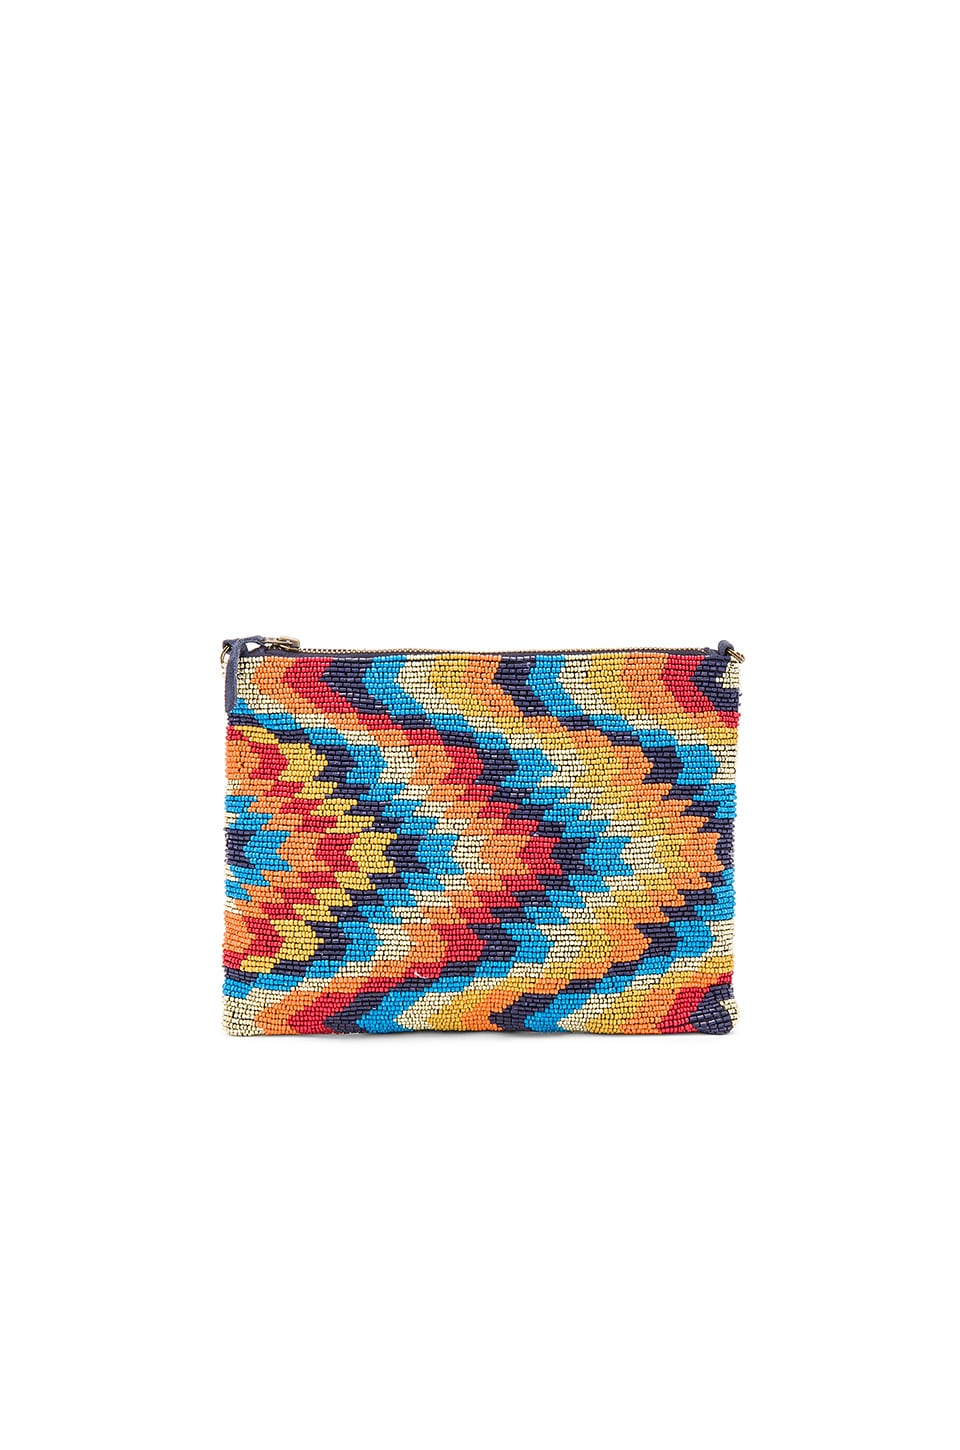 Yoki Beaded Clutch by Star Mela